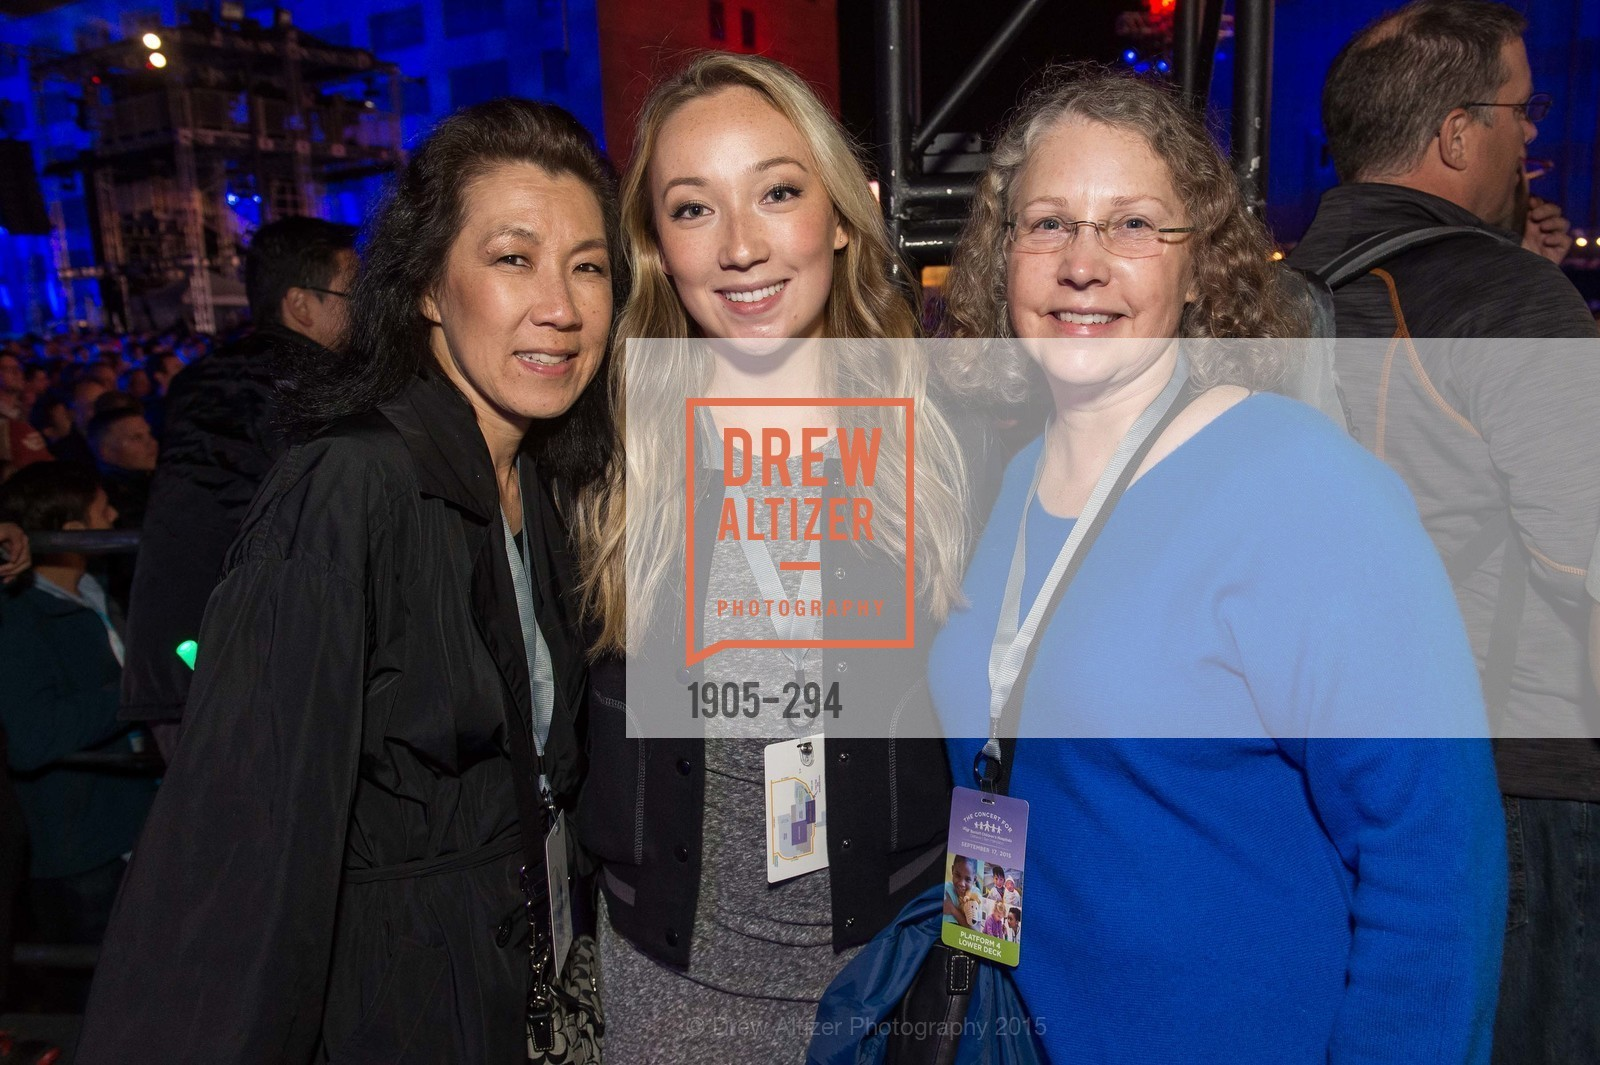 Corrine Bagaman, Megan Bagaman, Laura Bagaman, The Concert For UCSF Benioff Children's Hospital, Pier 70, September 17th, 2015,Drew Altizer, Drew Altizer Photography, full-service agency, private events, San Francisco photographer, photographer california